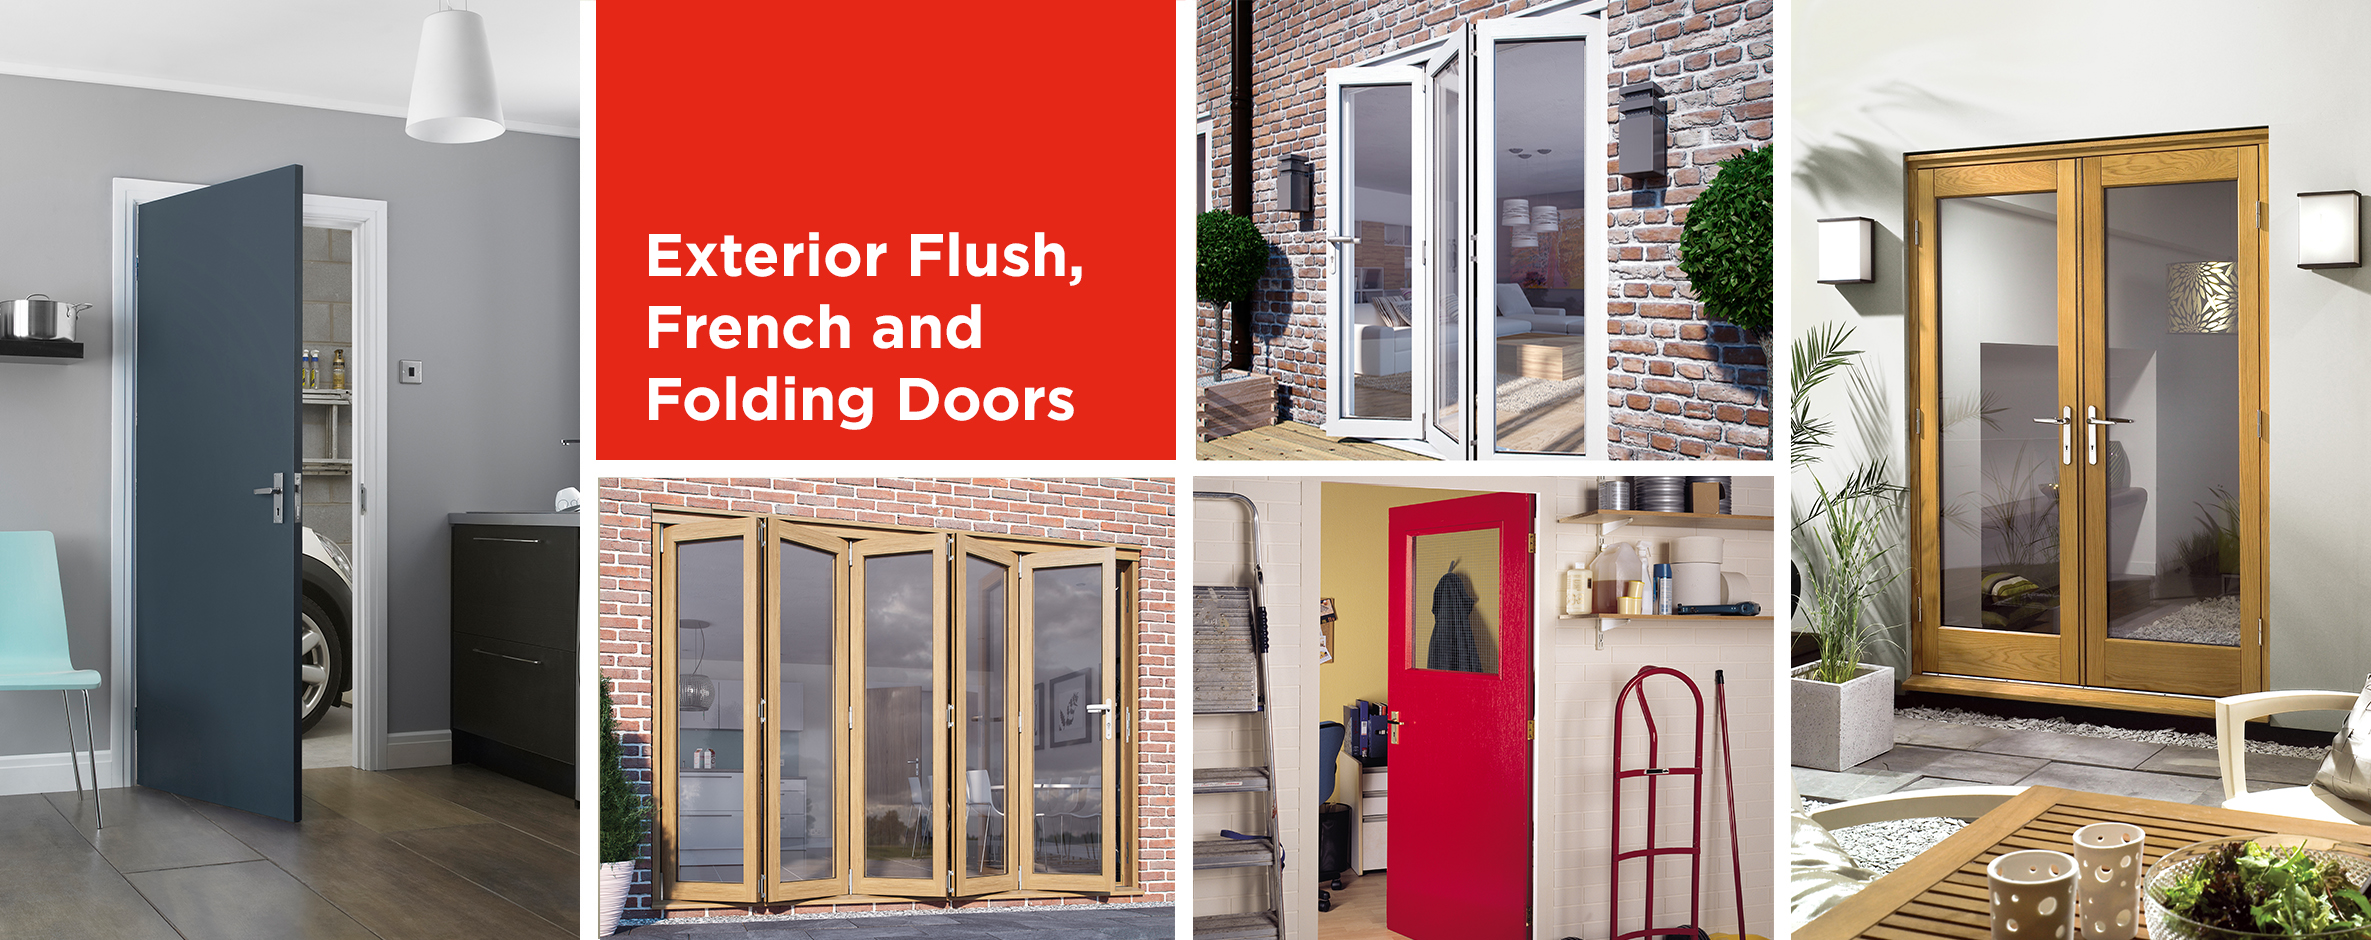 Exterior Flush, French and Folding Doors